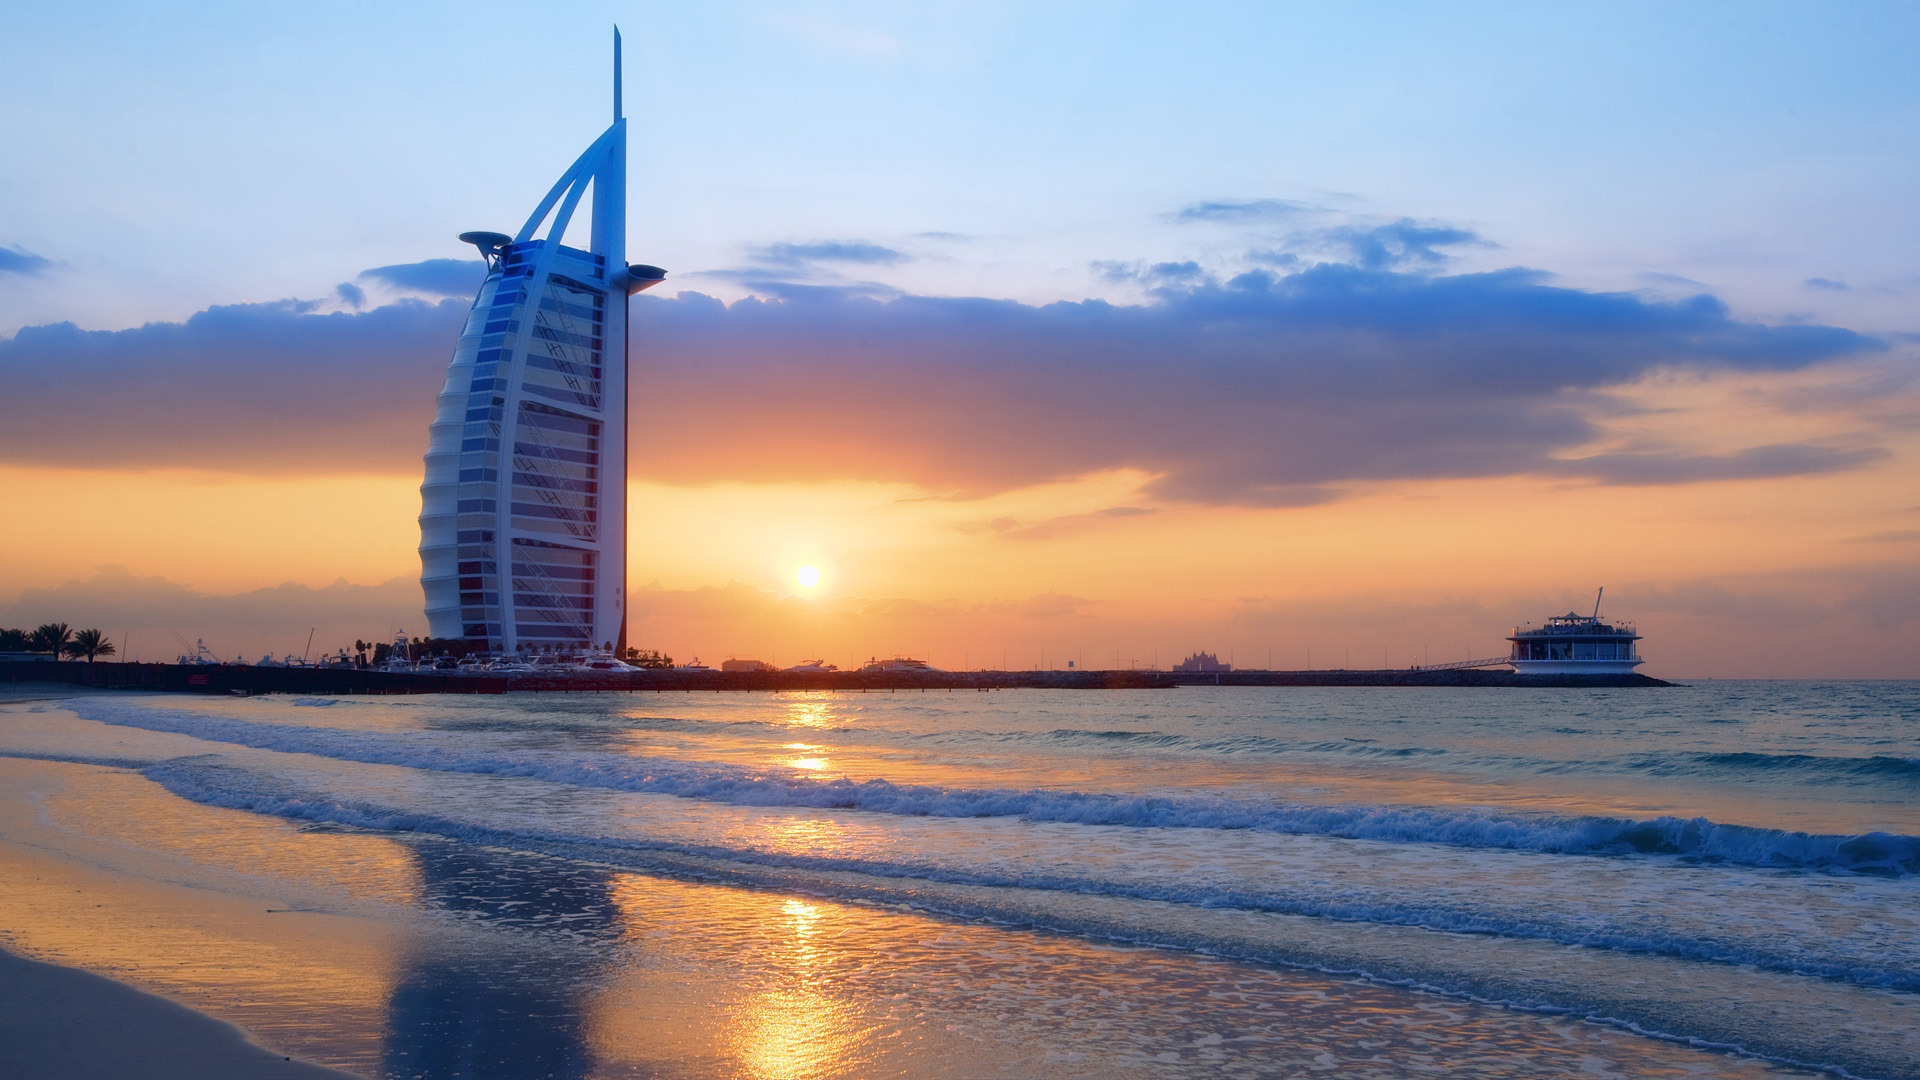 Burj al arab dubai hd wallpaper hd latest wallpapers - Burj al arab wallpaper iphone ...